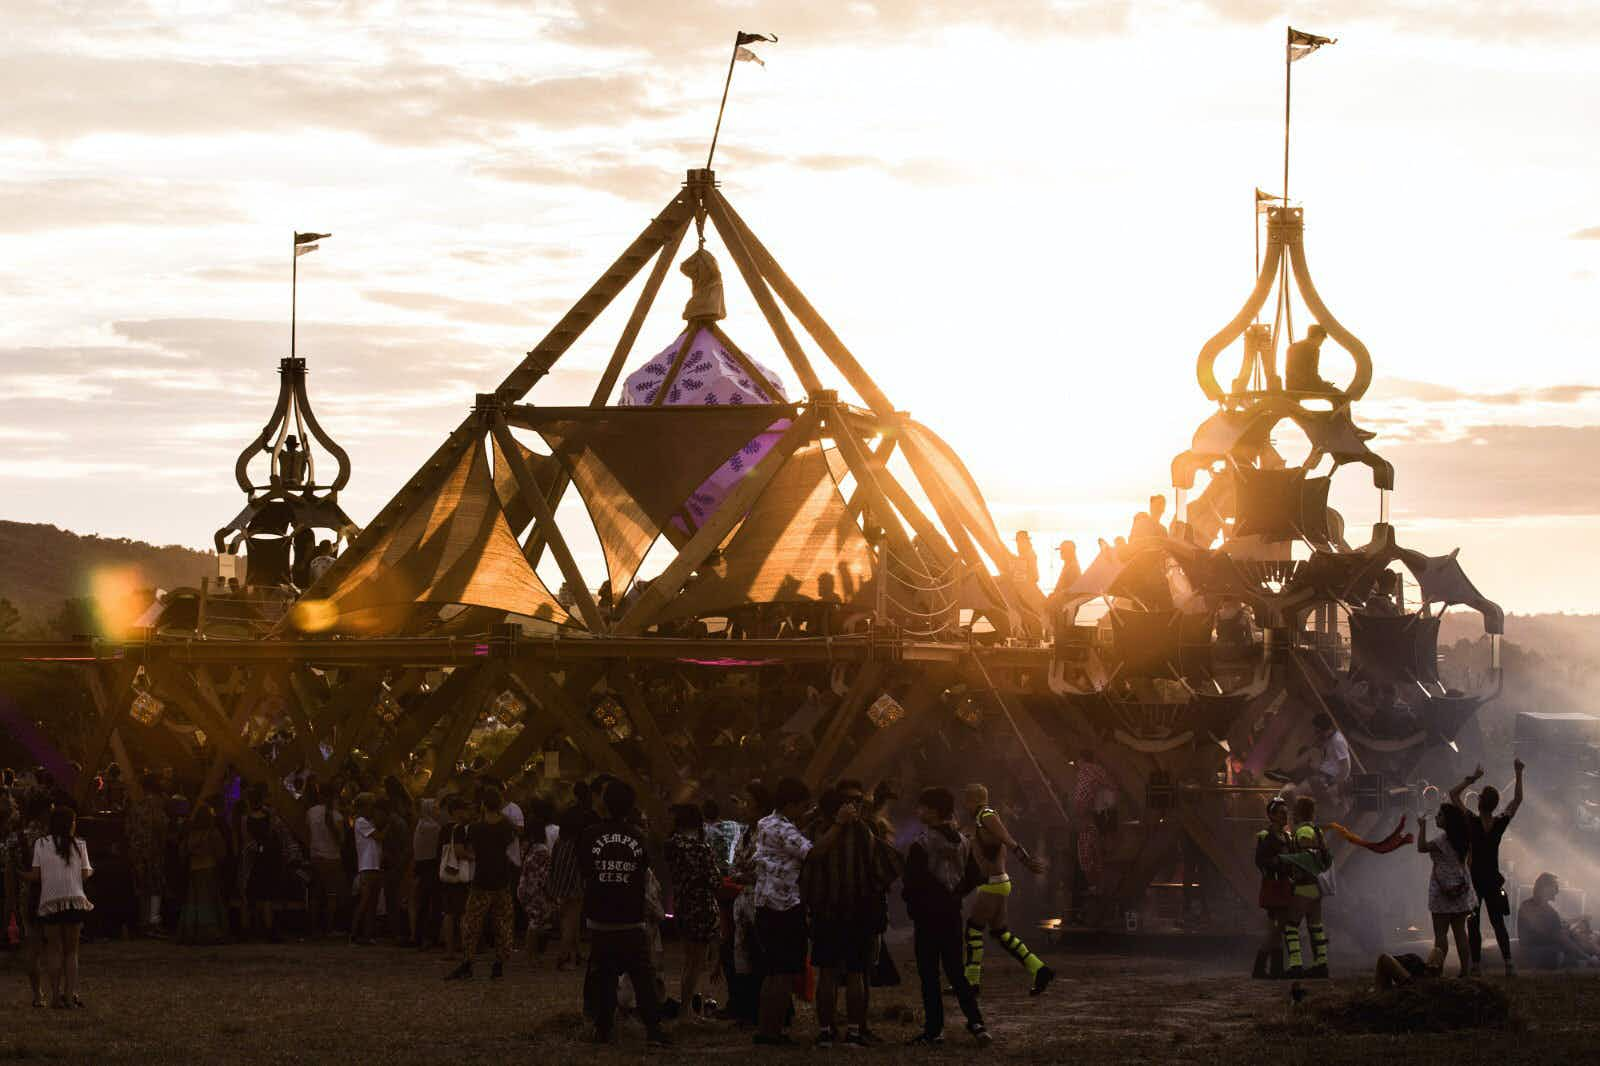 Thailand is holding a Burning Man style festival this year